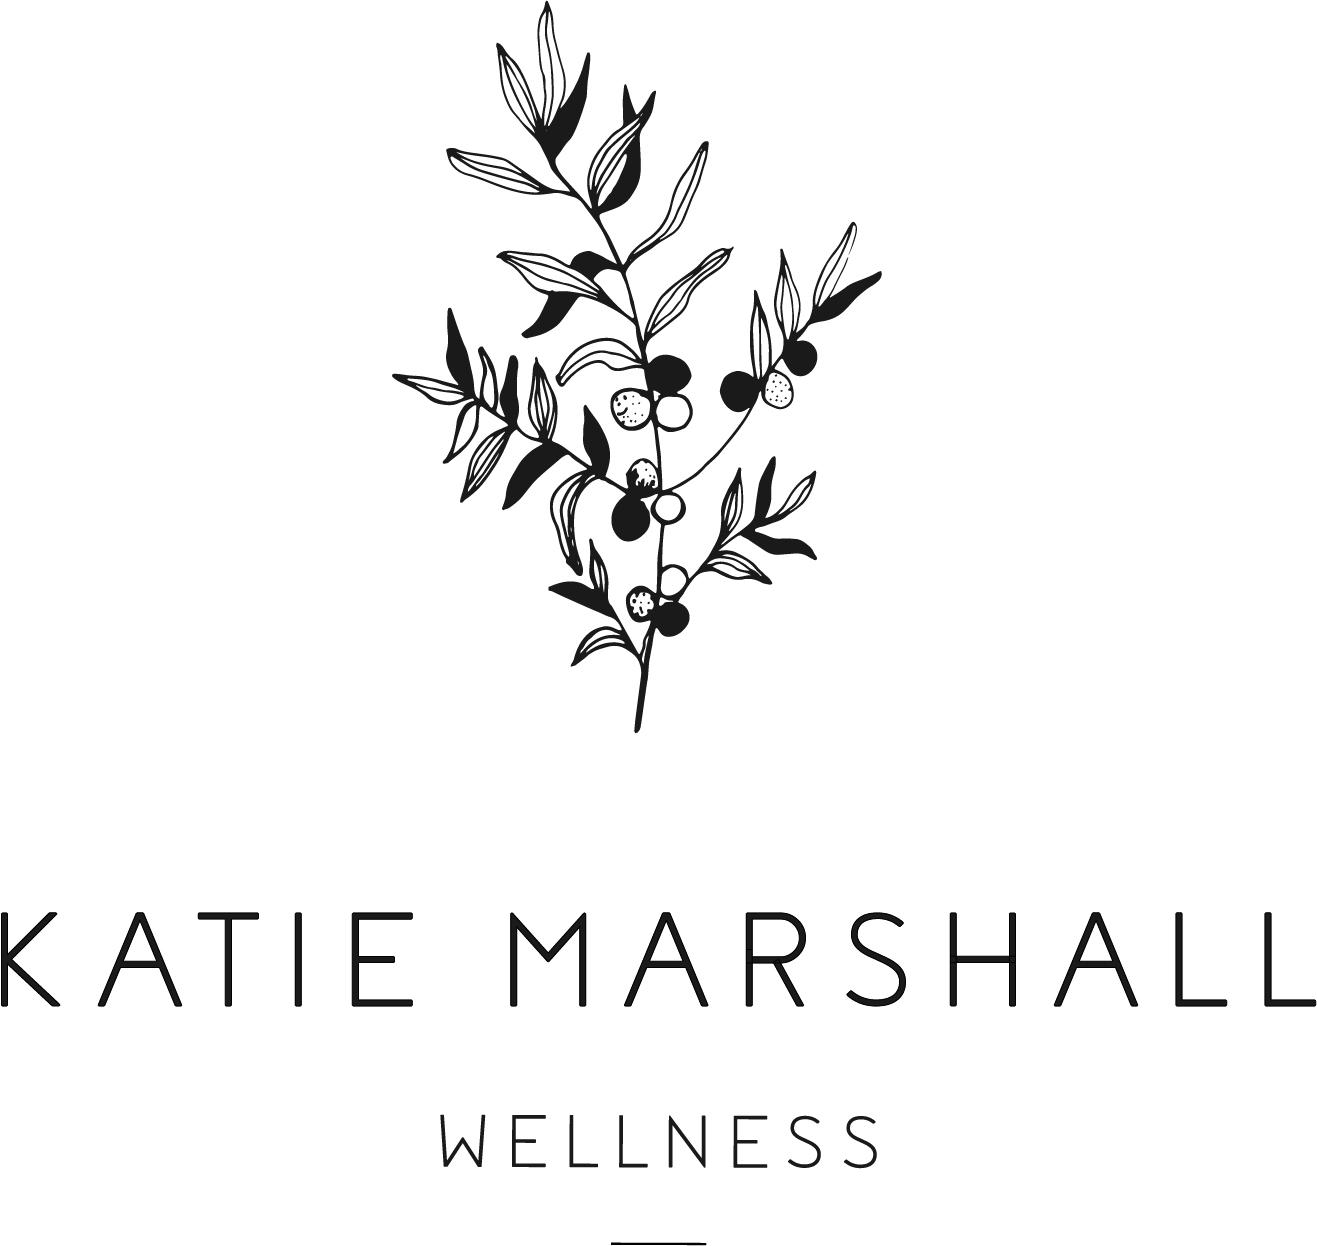 Katie Marshall Wellness